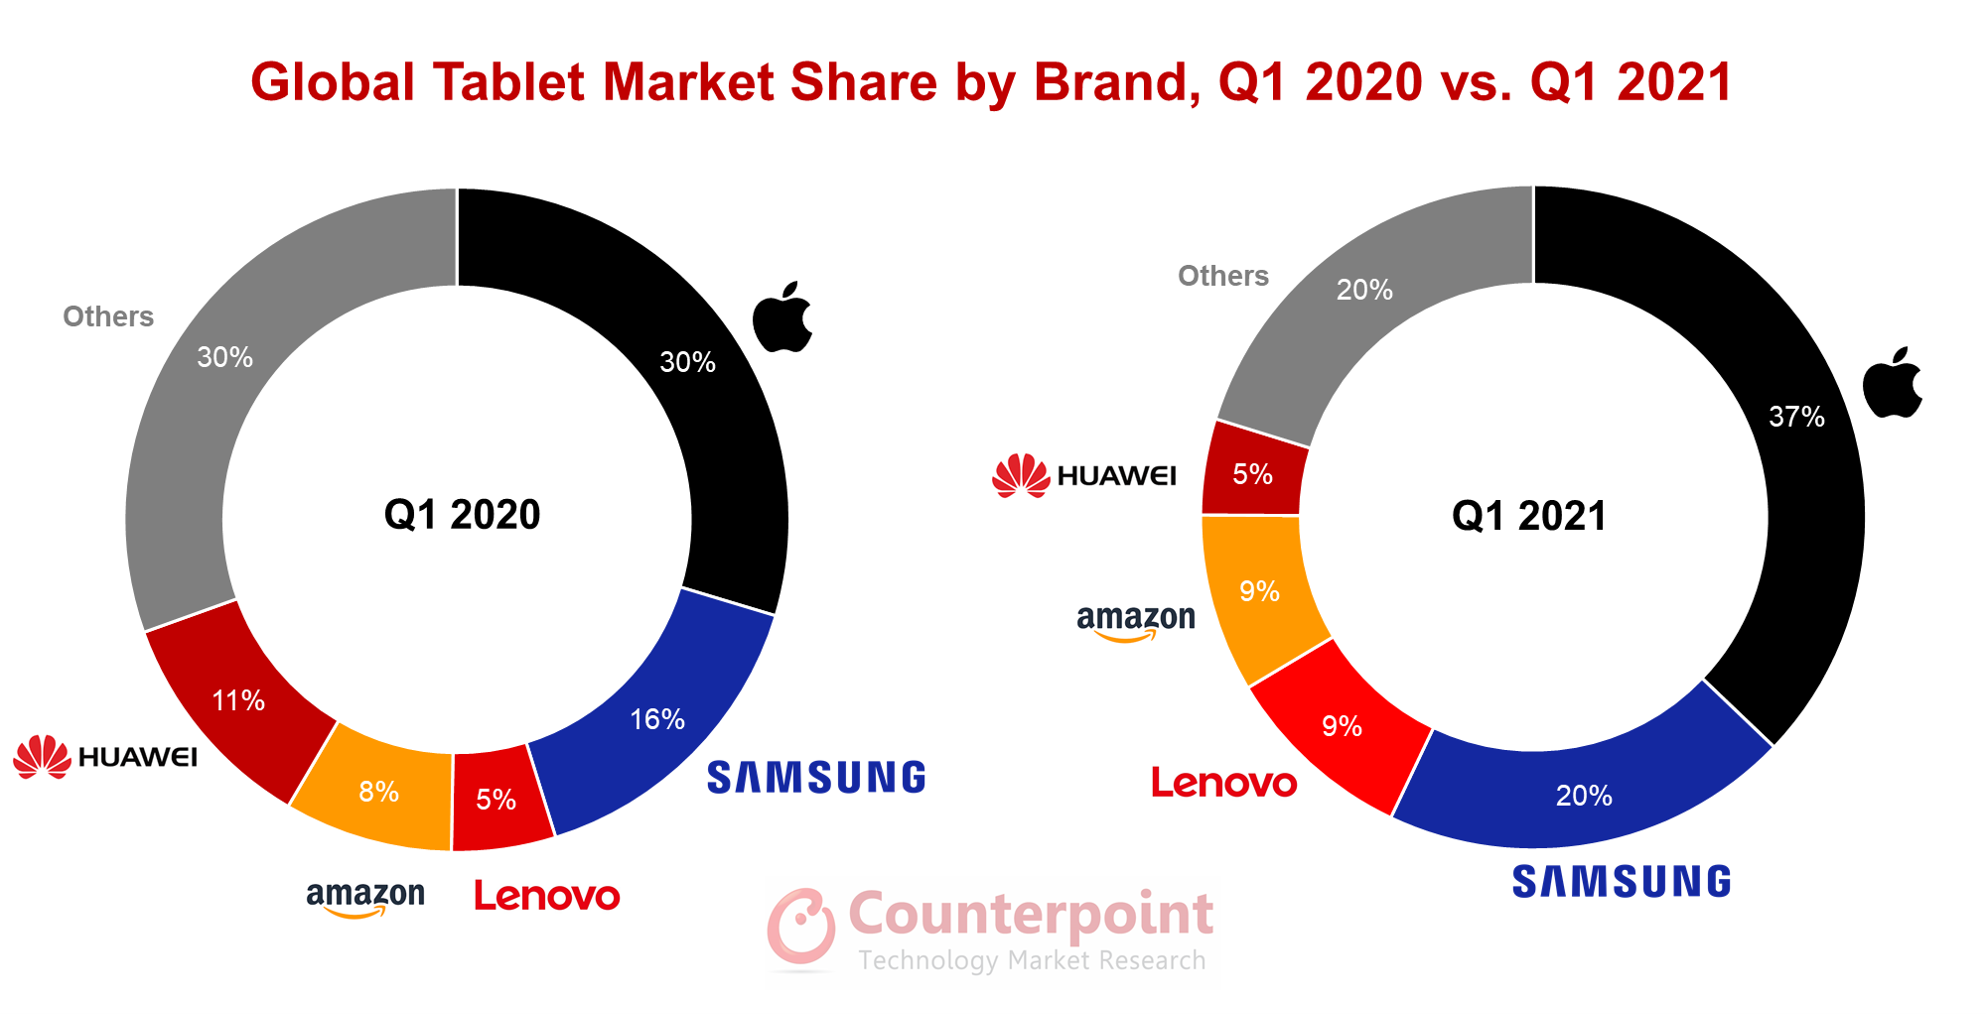 Counterpoint Research Global Tablet Market Share by Brand, Q1 2020 vs. Q1 2021